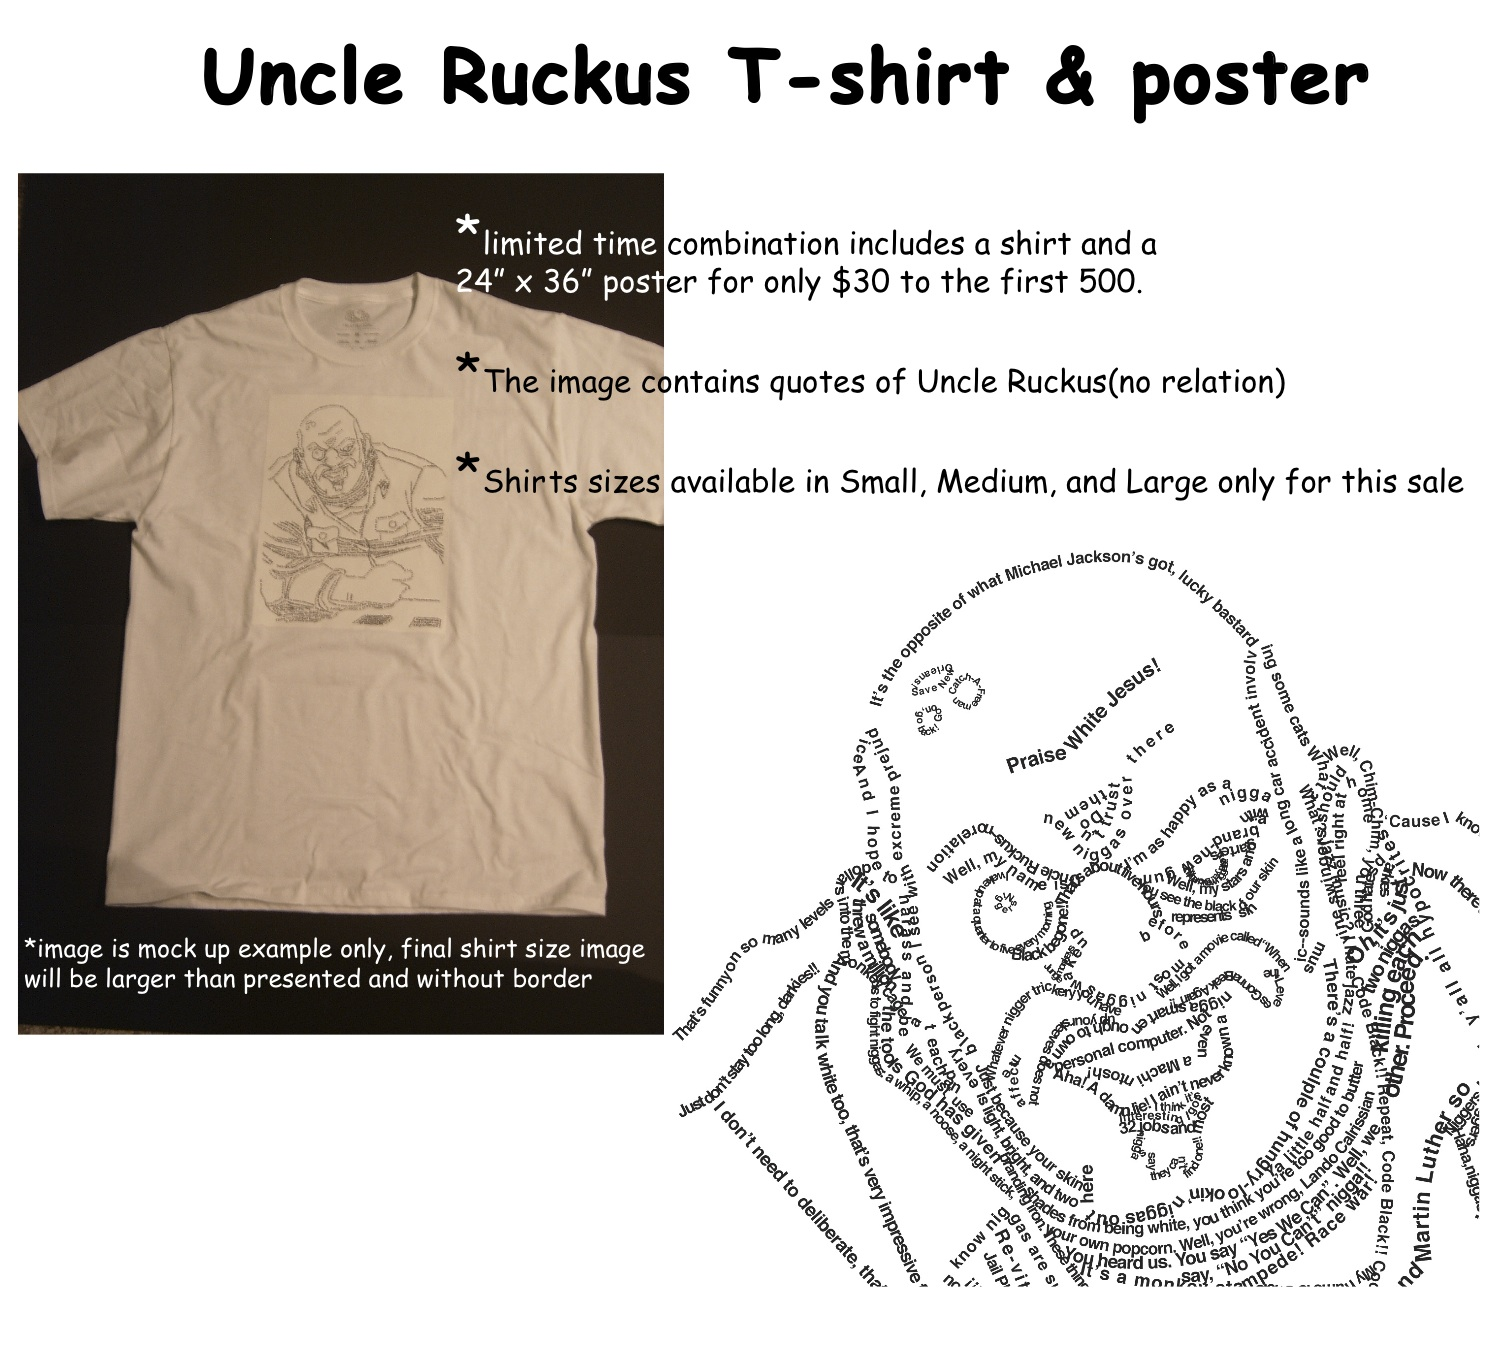 Uncle Ruckus shirt poster combo